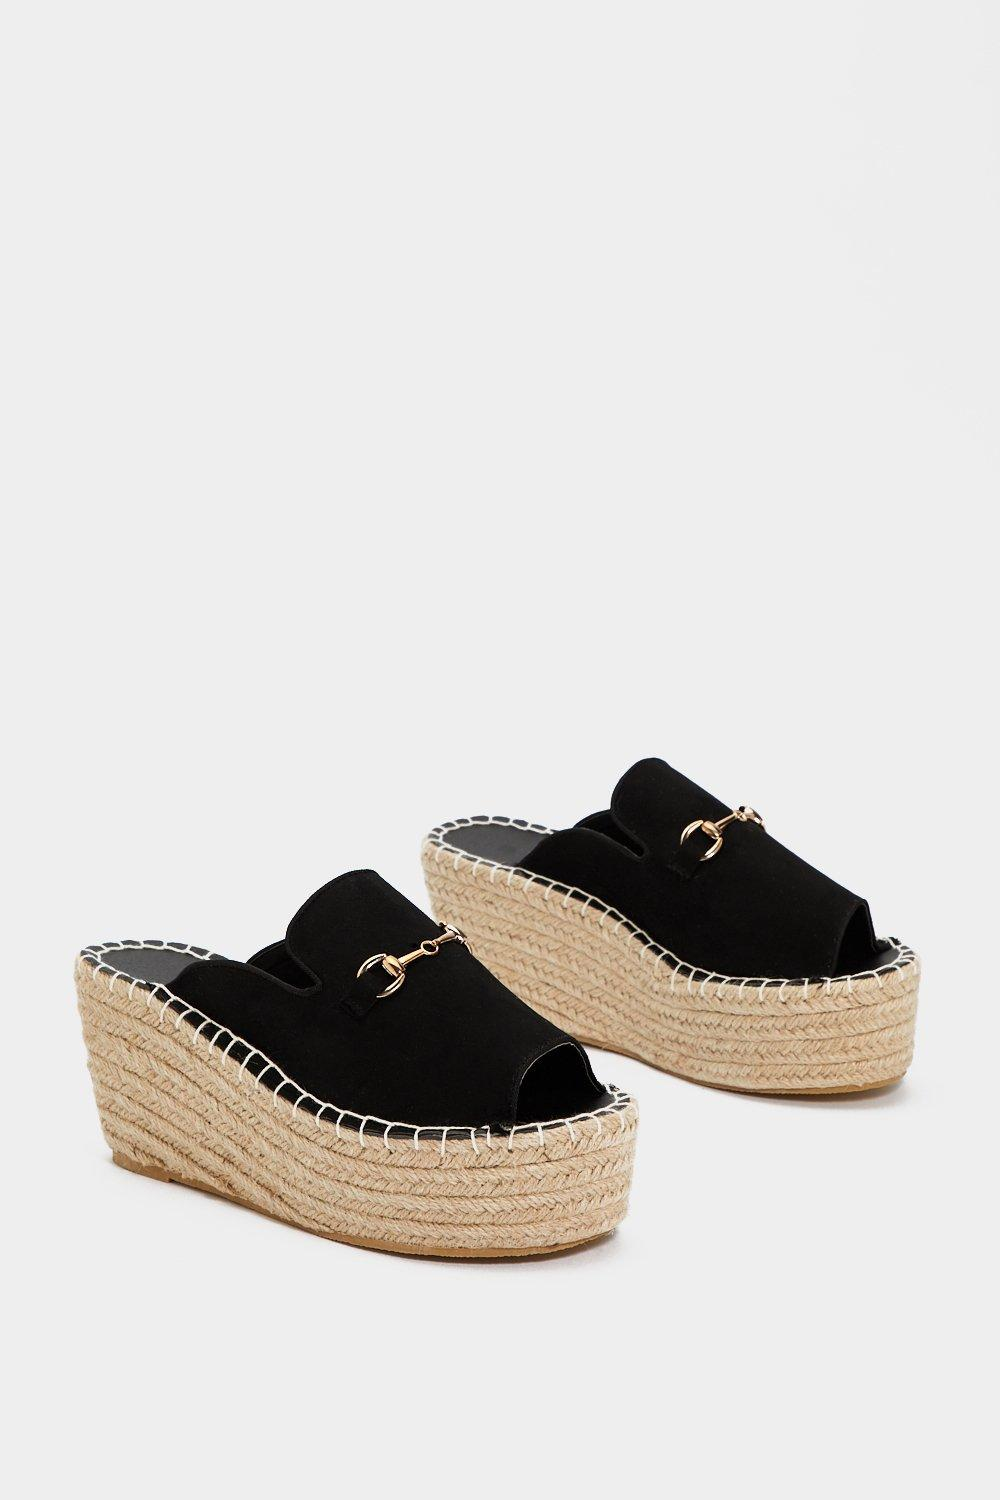 8cf03b931 Up and At 'Em Espadrille Mule | Shop Clothes at Nasty Gal!